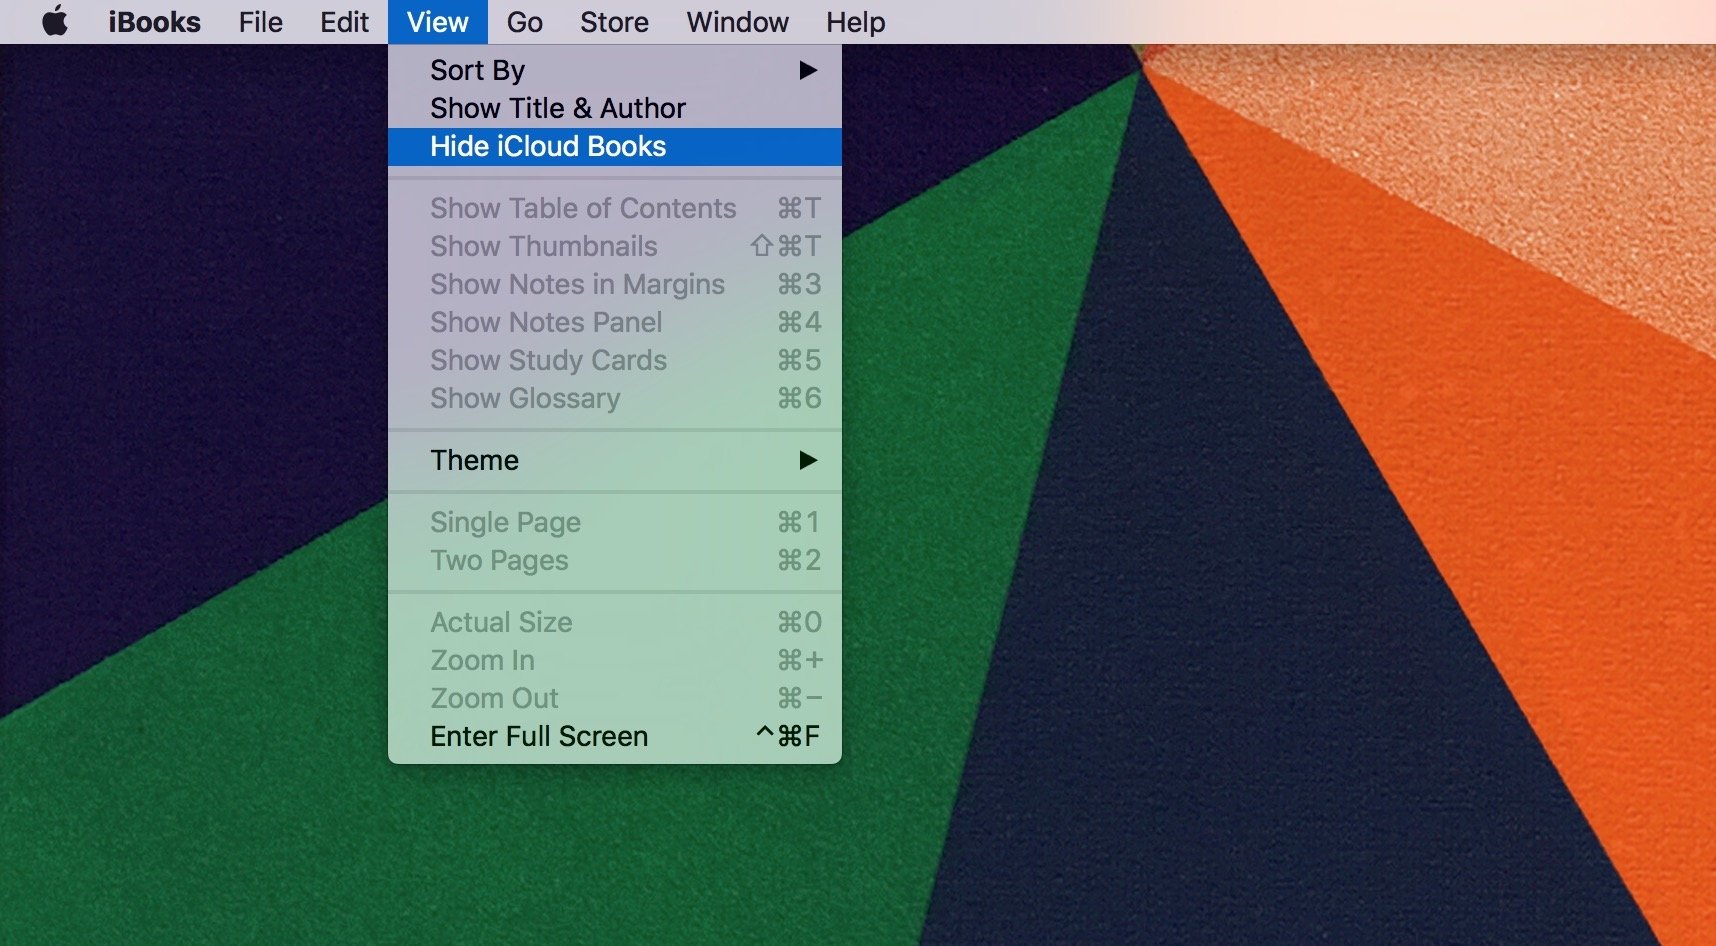 How to hide purchased books in iBooks